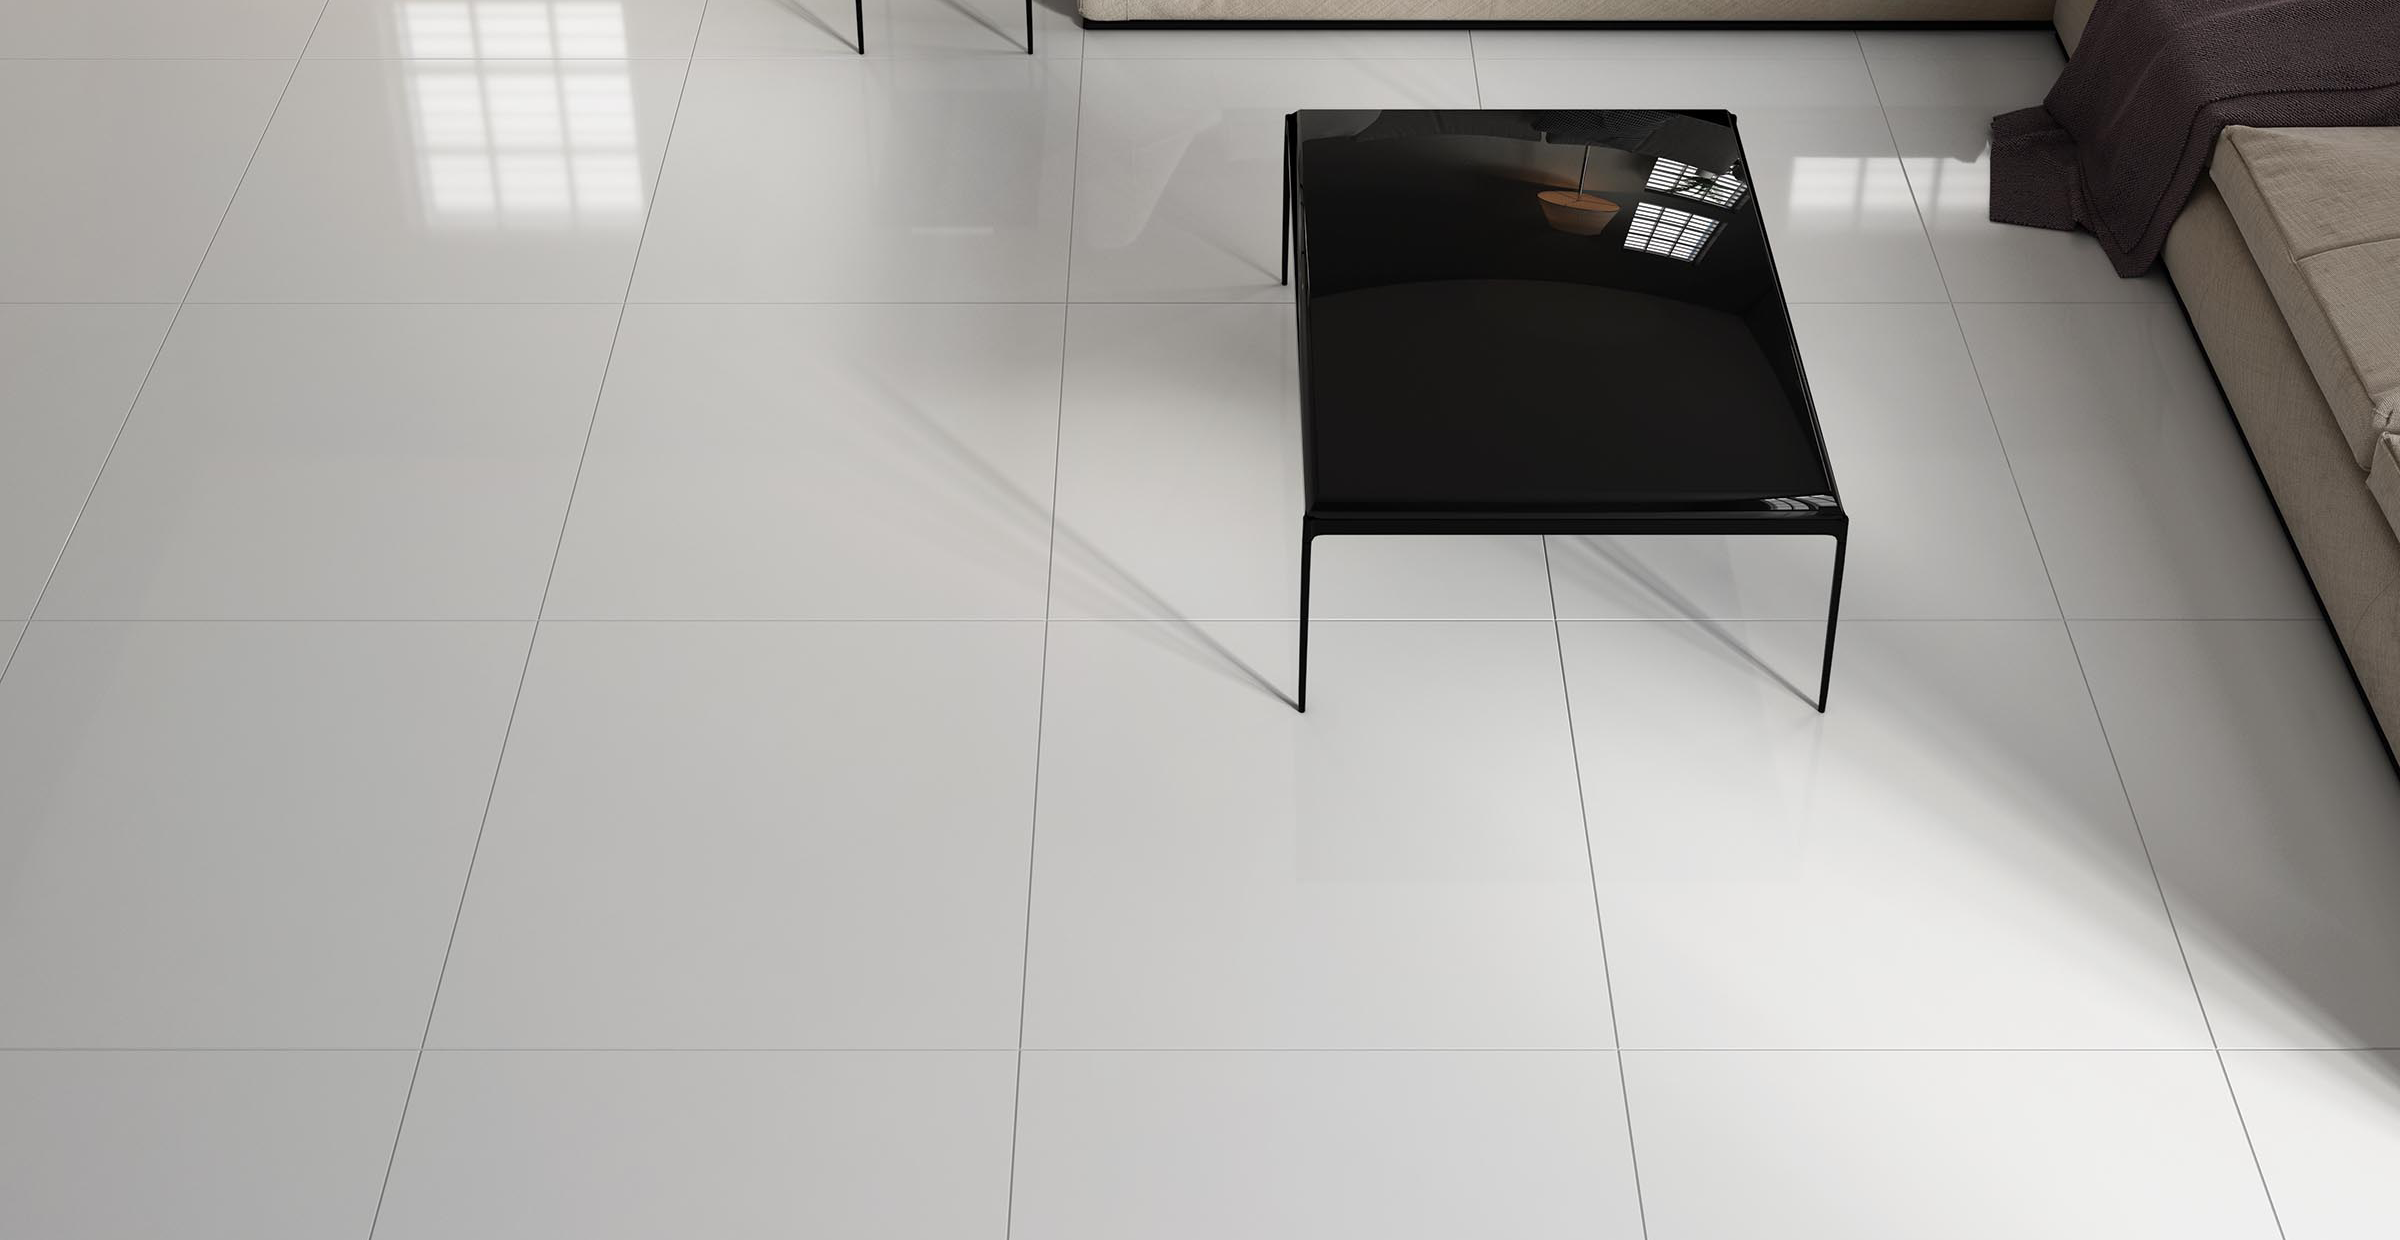 white collection Blanco ceramica Moderno estilo  Vivo